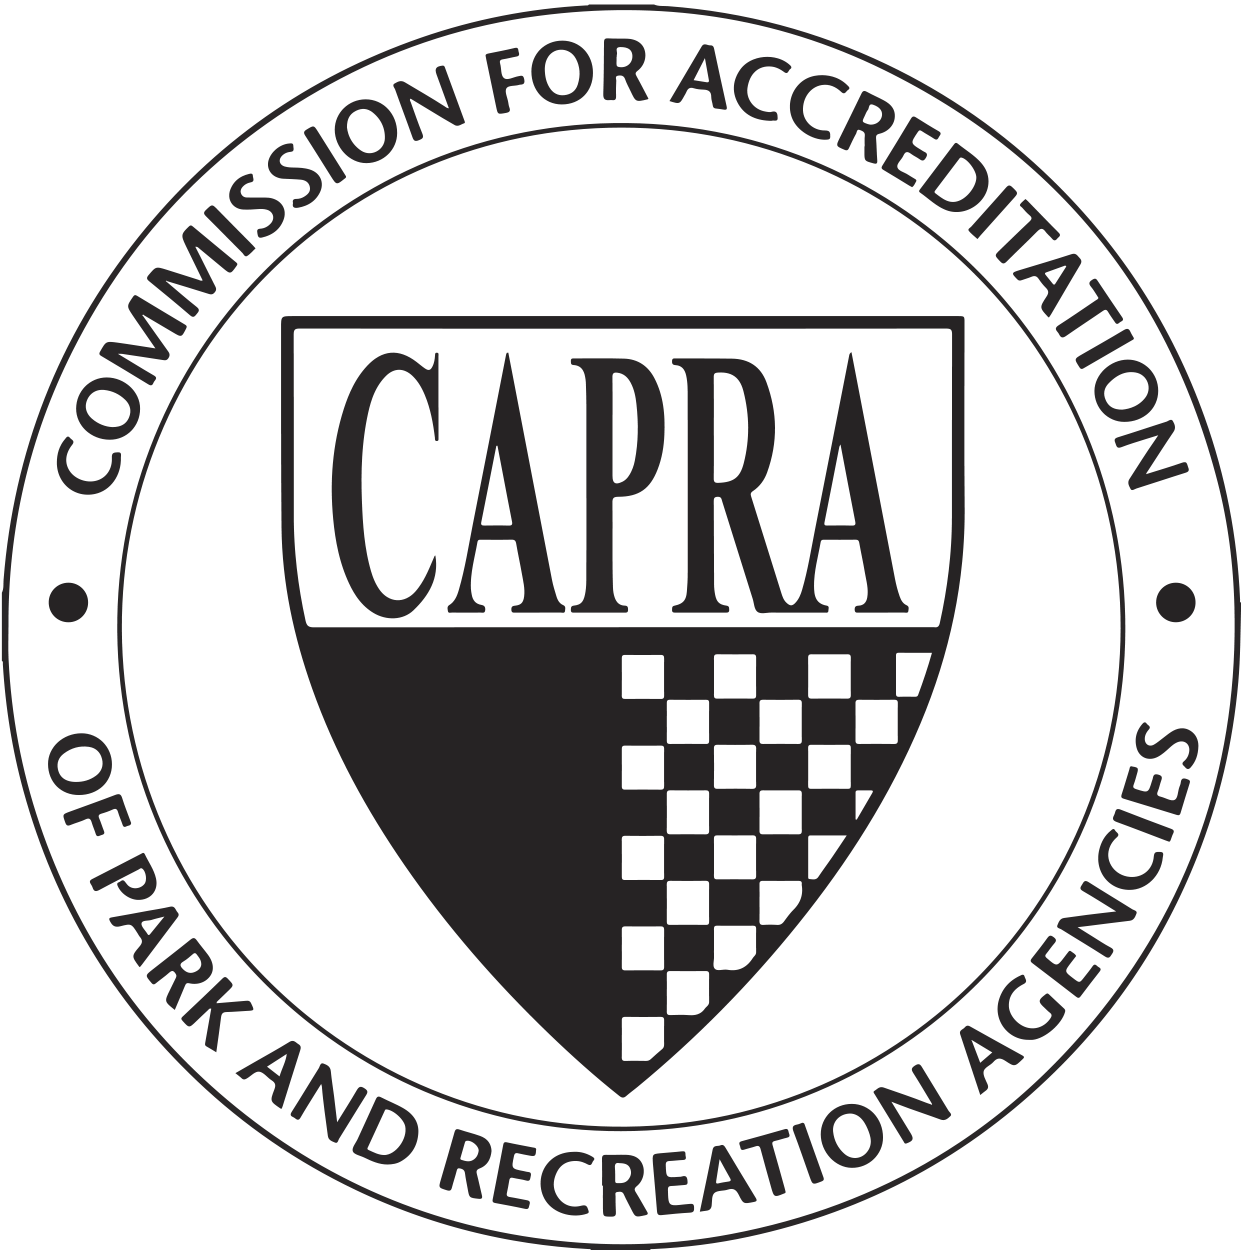 Commission for Accreditation of Park and Recreation Agencies Logo